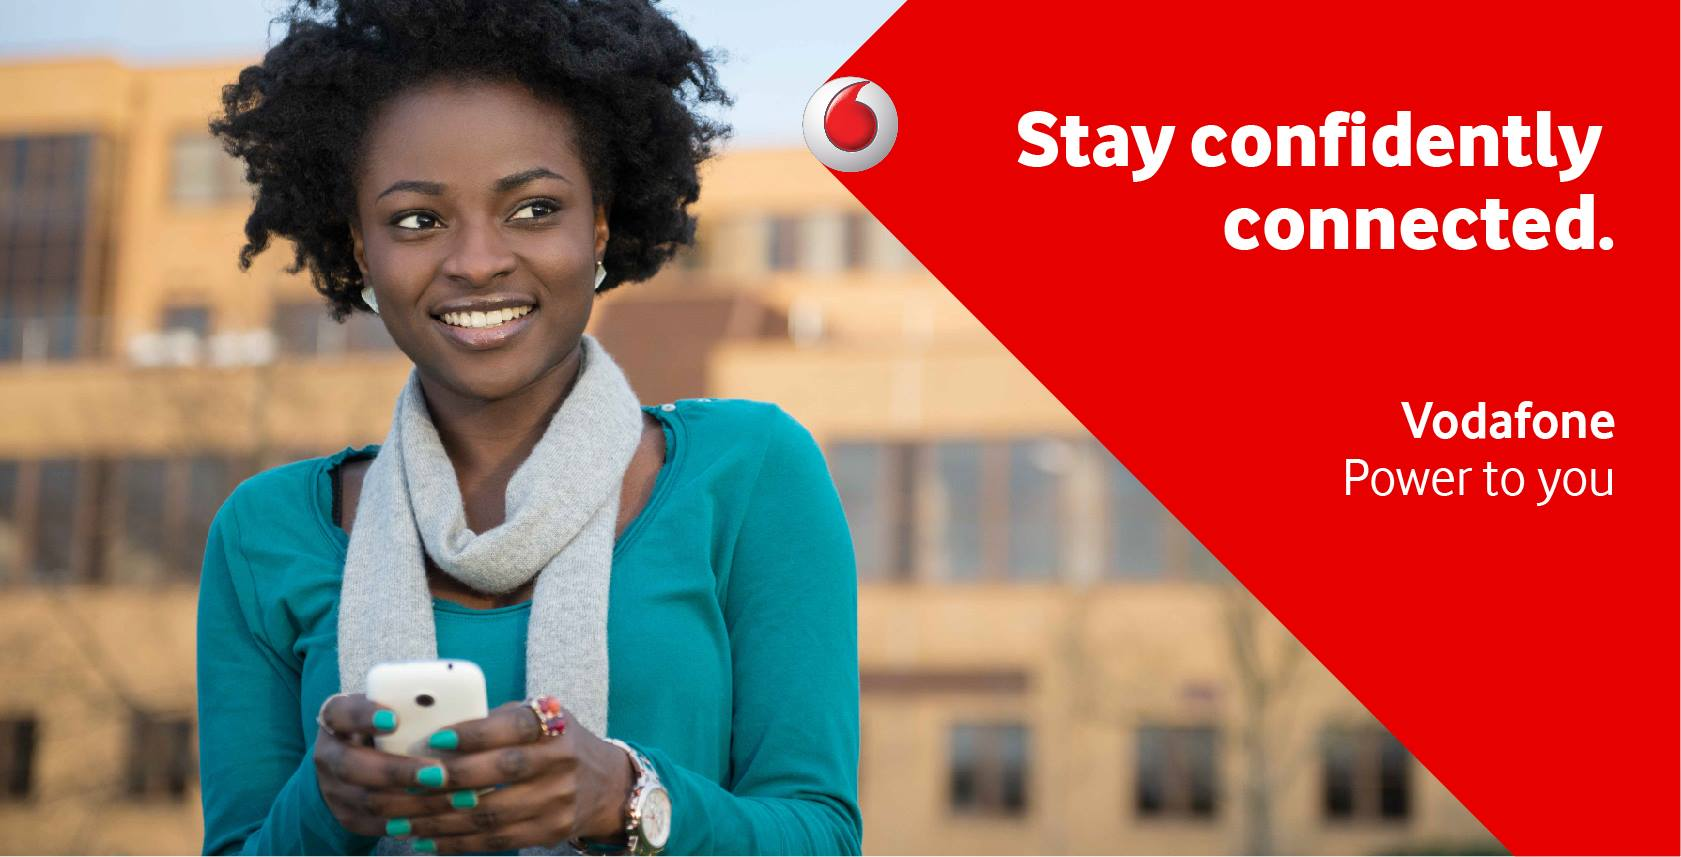 vodafone Uganda data packages